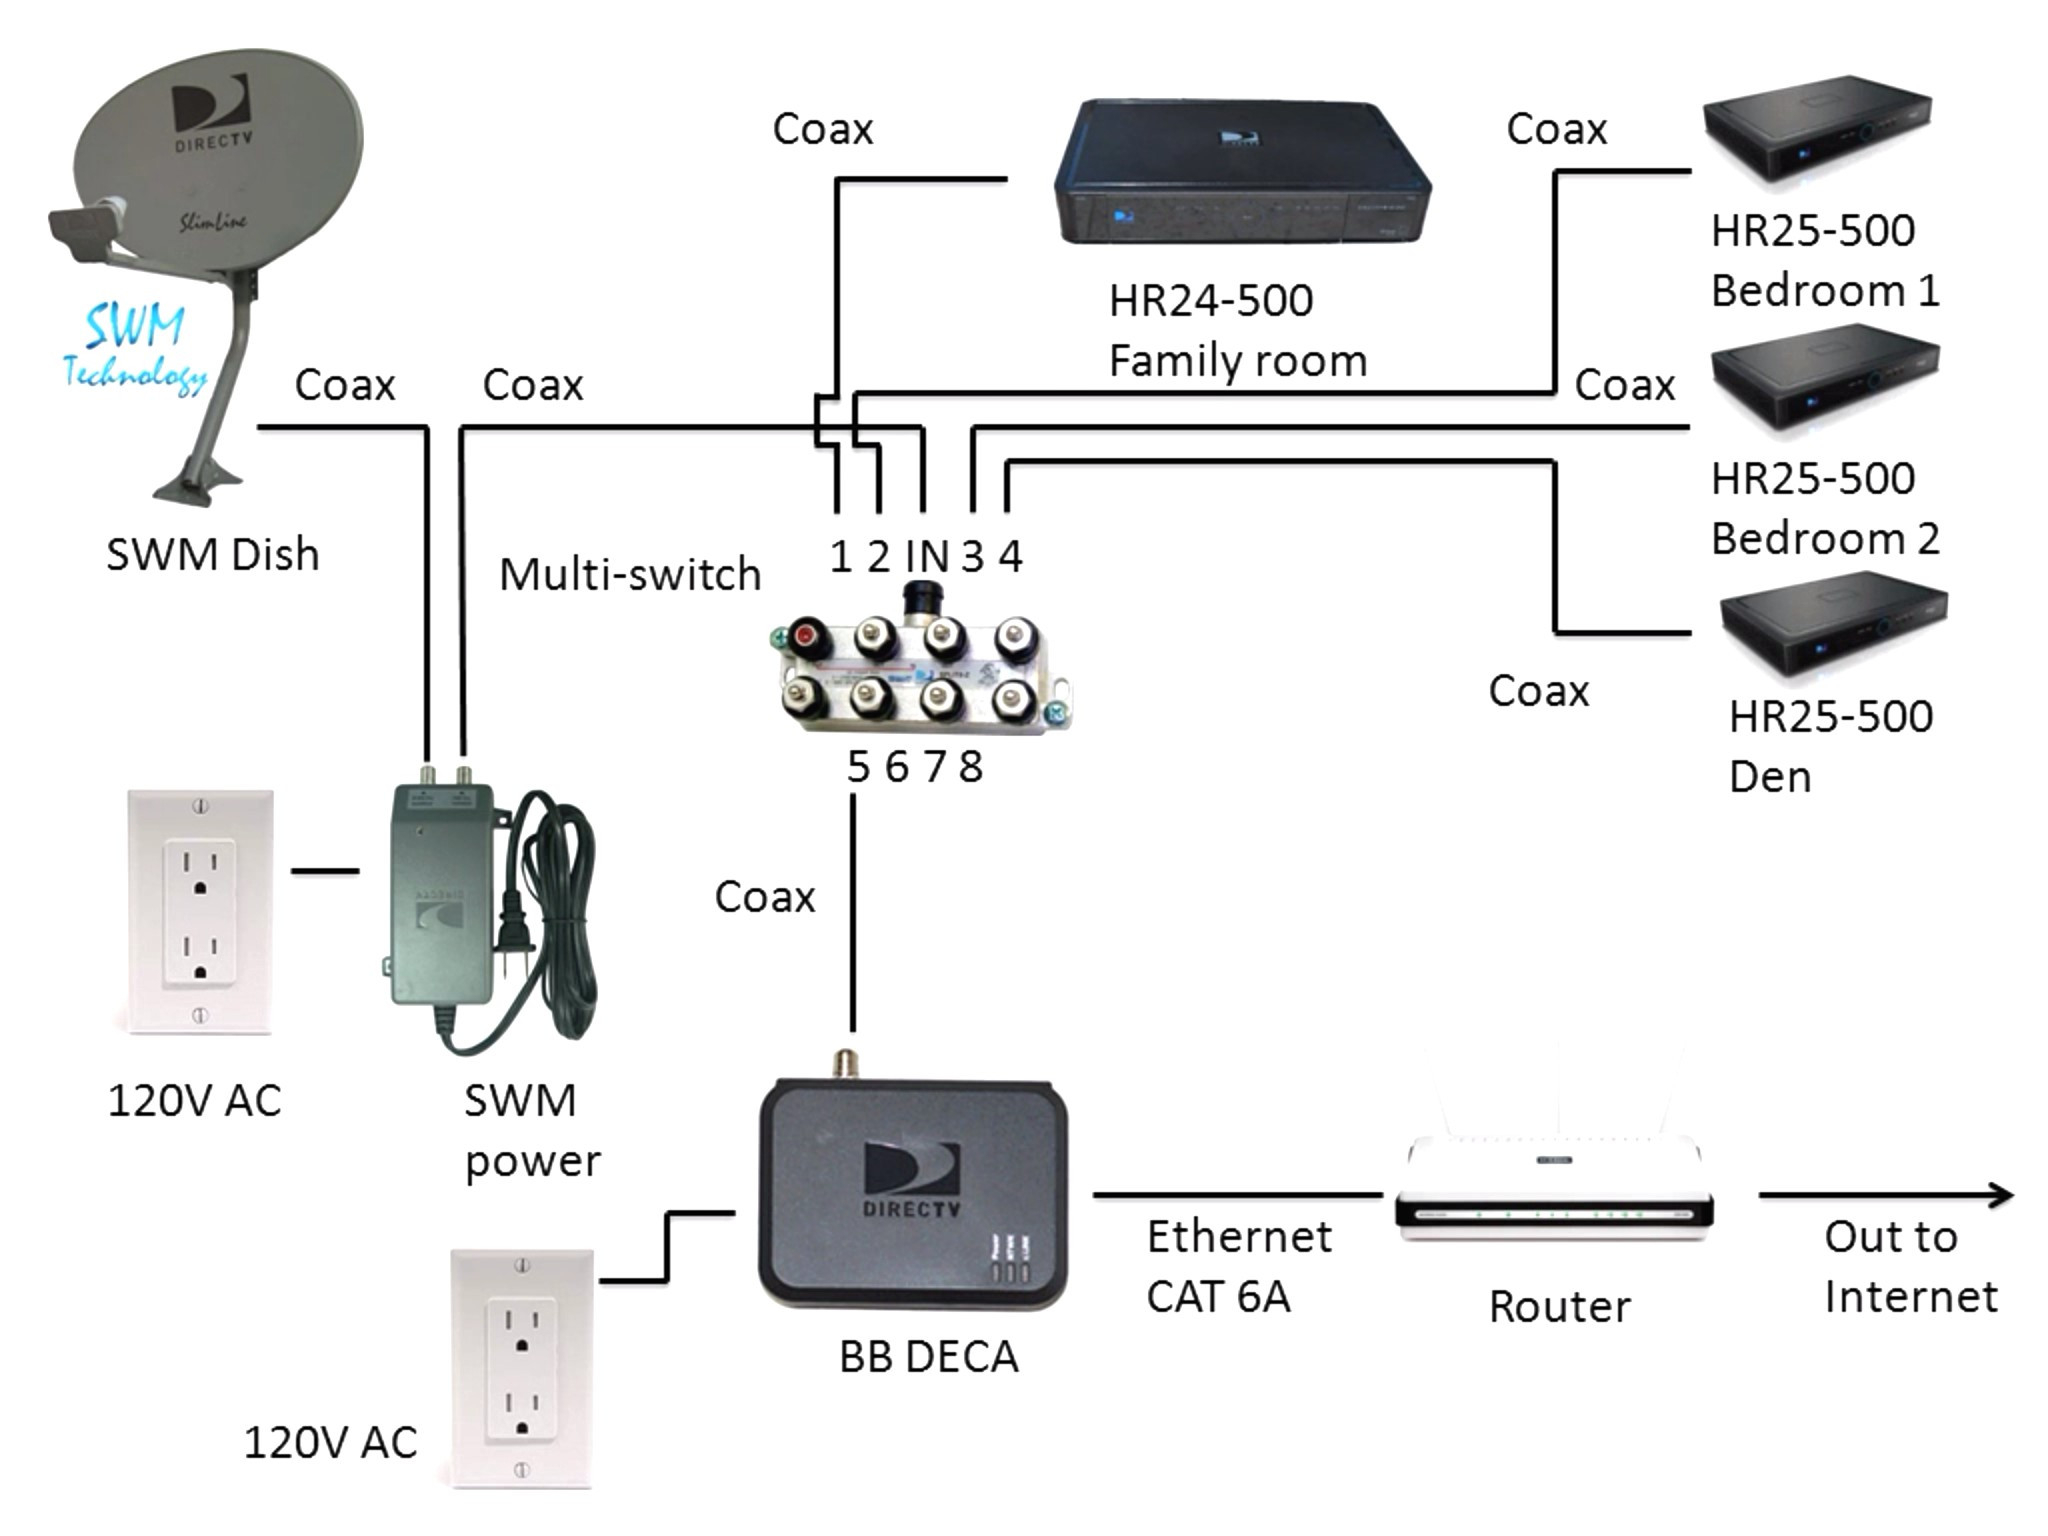 direct tv wiring diagram Download-Direct Tv Wiring Diagram Beautiful Directv Swm Diagrams And Resources Simple Dish Network 2 10-k